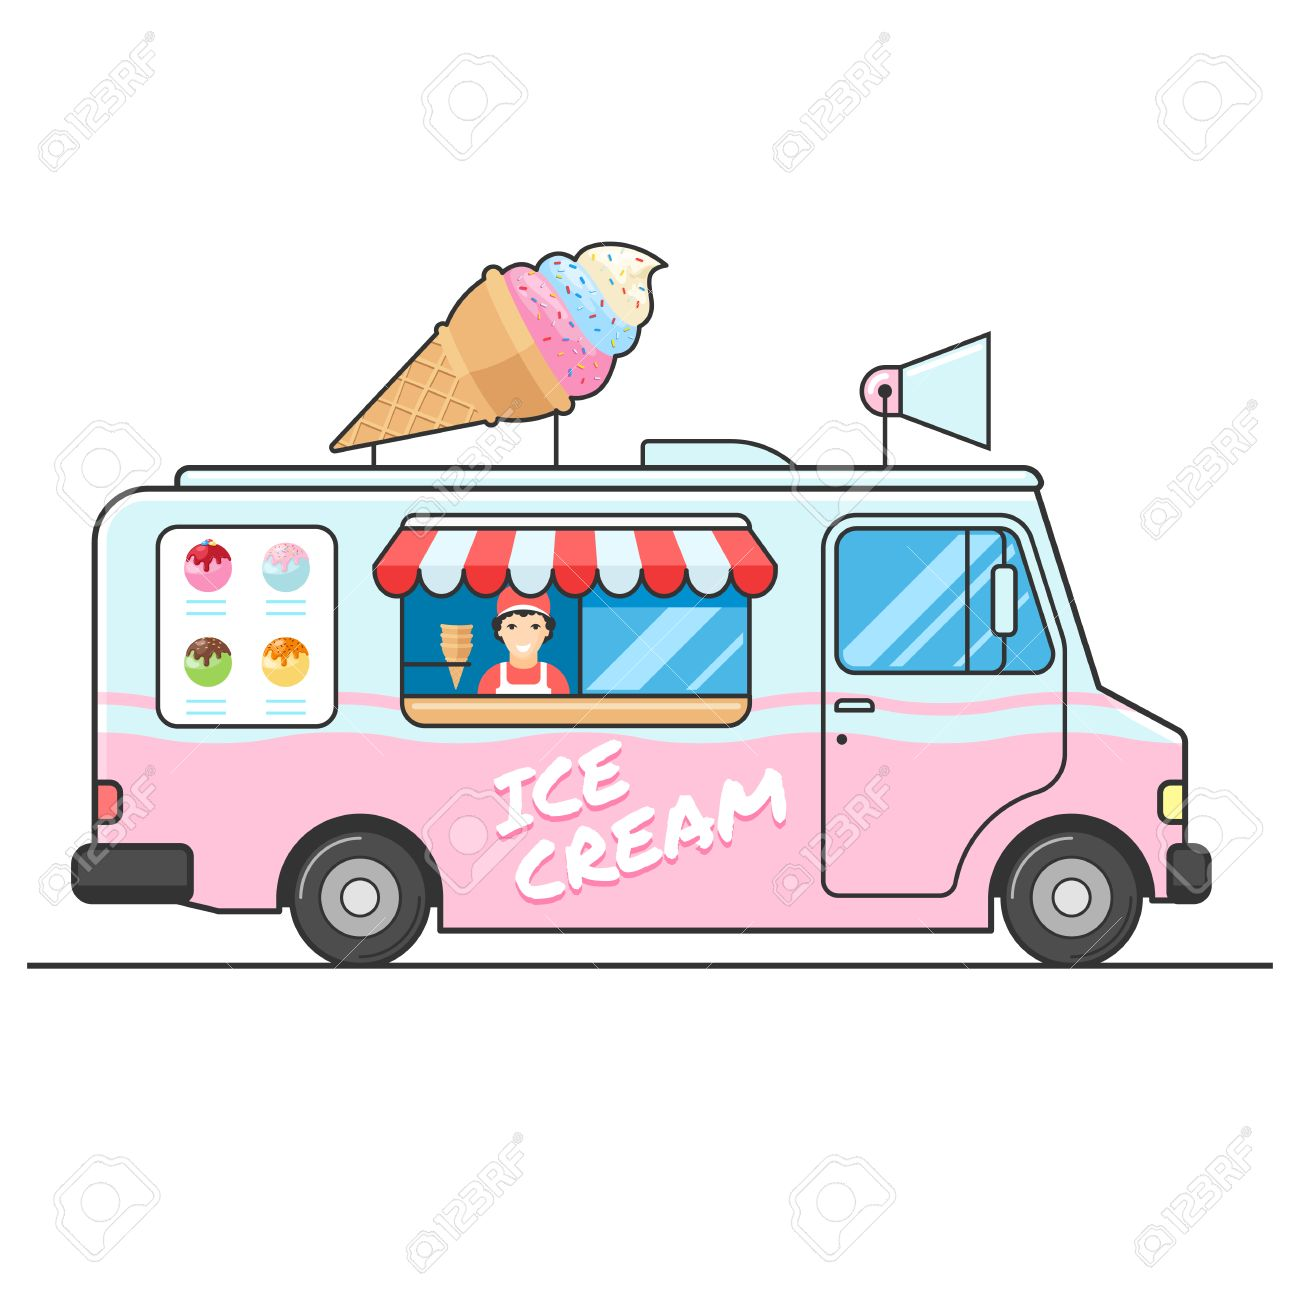 ice cream truck side view seller of ice cream in the van ice rh 123rf com  clipart ice cream truck images